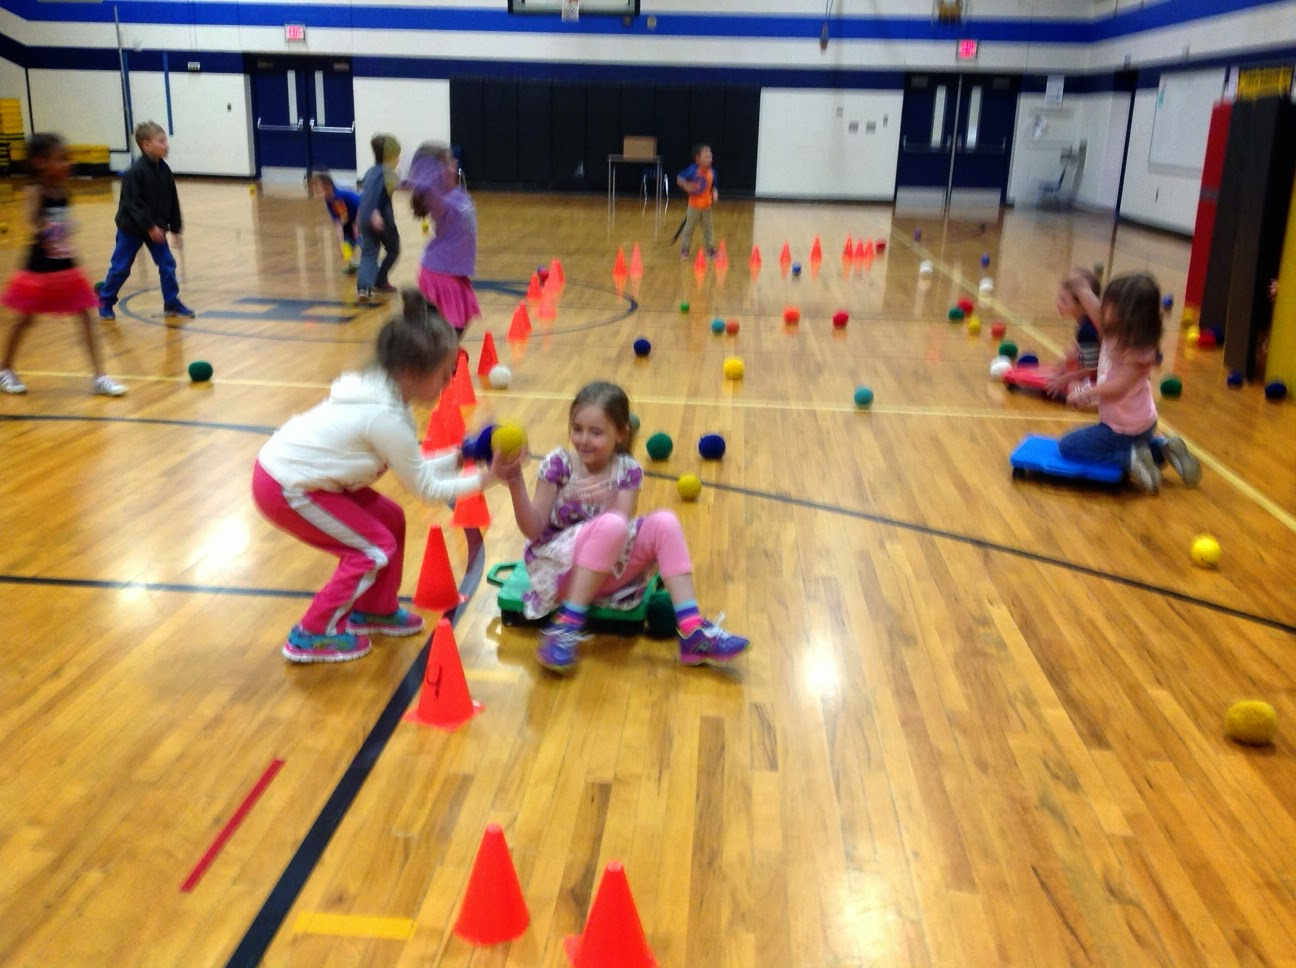 Carly's Pe Games Star Wars Throwing Game And Relay Races. Information Technology Consulting. Quickbooks Payroll Trial Solar Energy Options. Best Debit Card Rewards Brian West State Farm. Computer Monitoring Software For Business. How To Lose Weight On A Liquid Diet. Refrigerator Compressor Repair Cost. Top Paying Affiliate Sites Title Loan Places. Personal Injury Attorney Colorado Springs